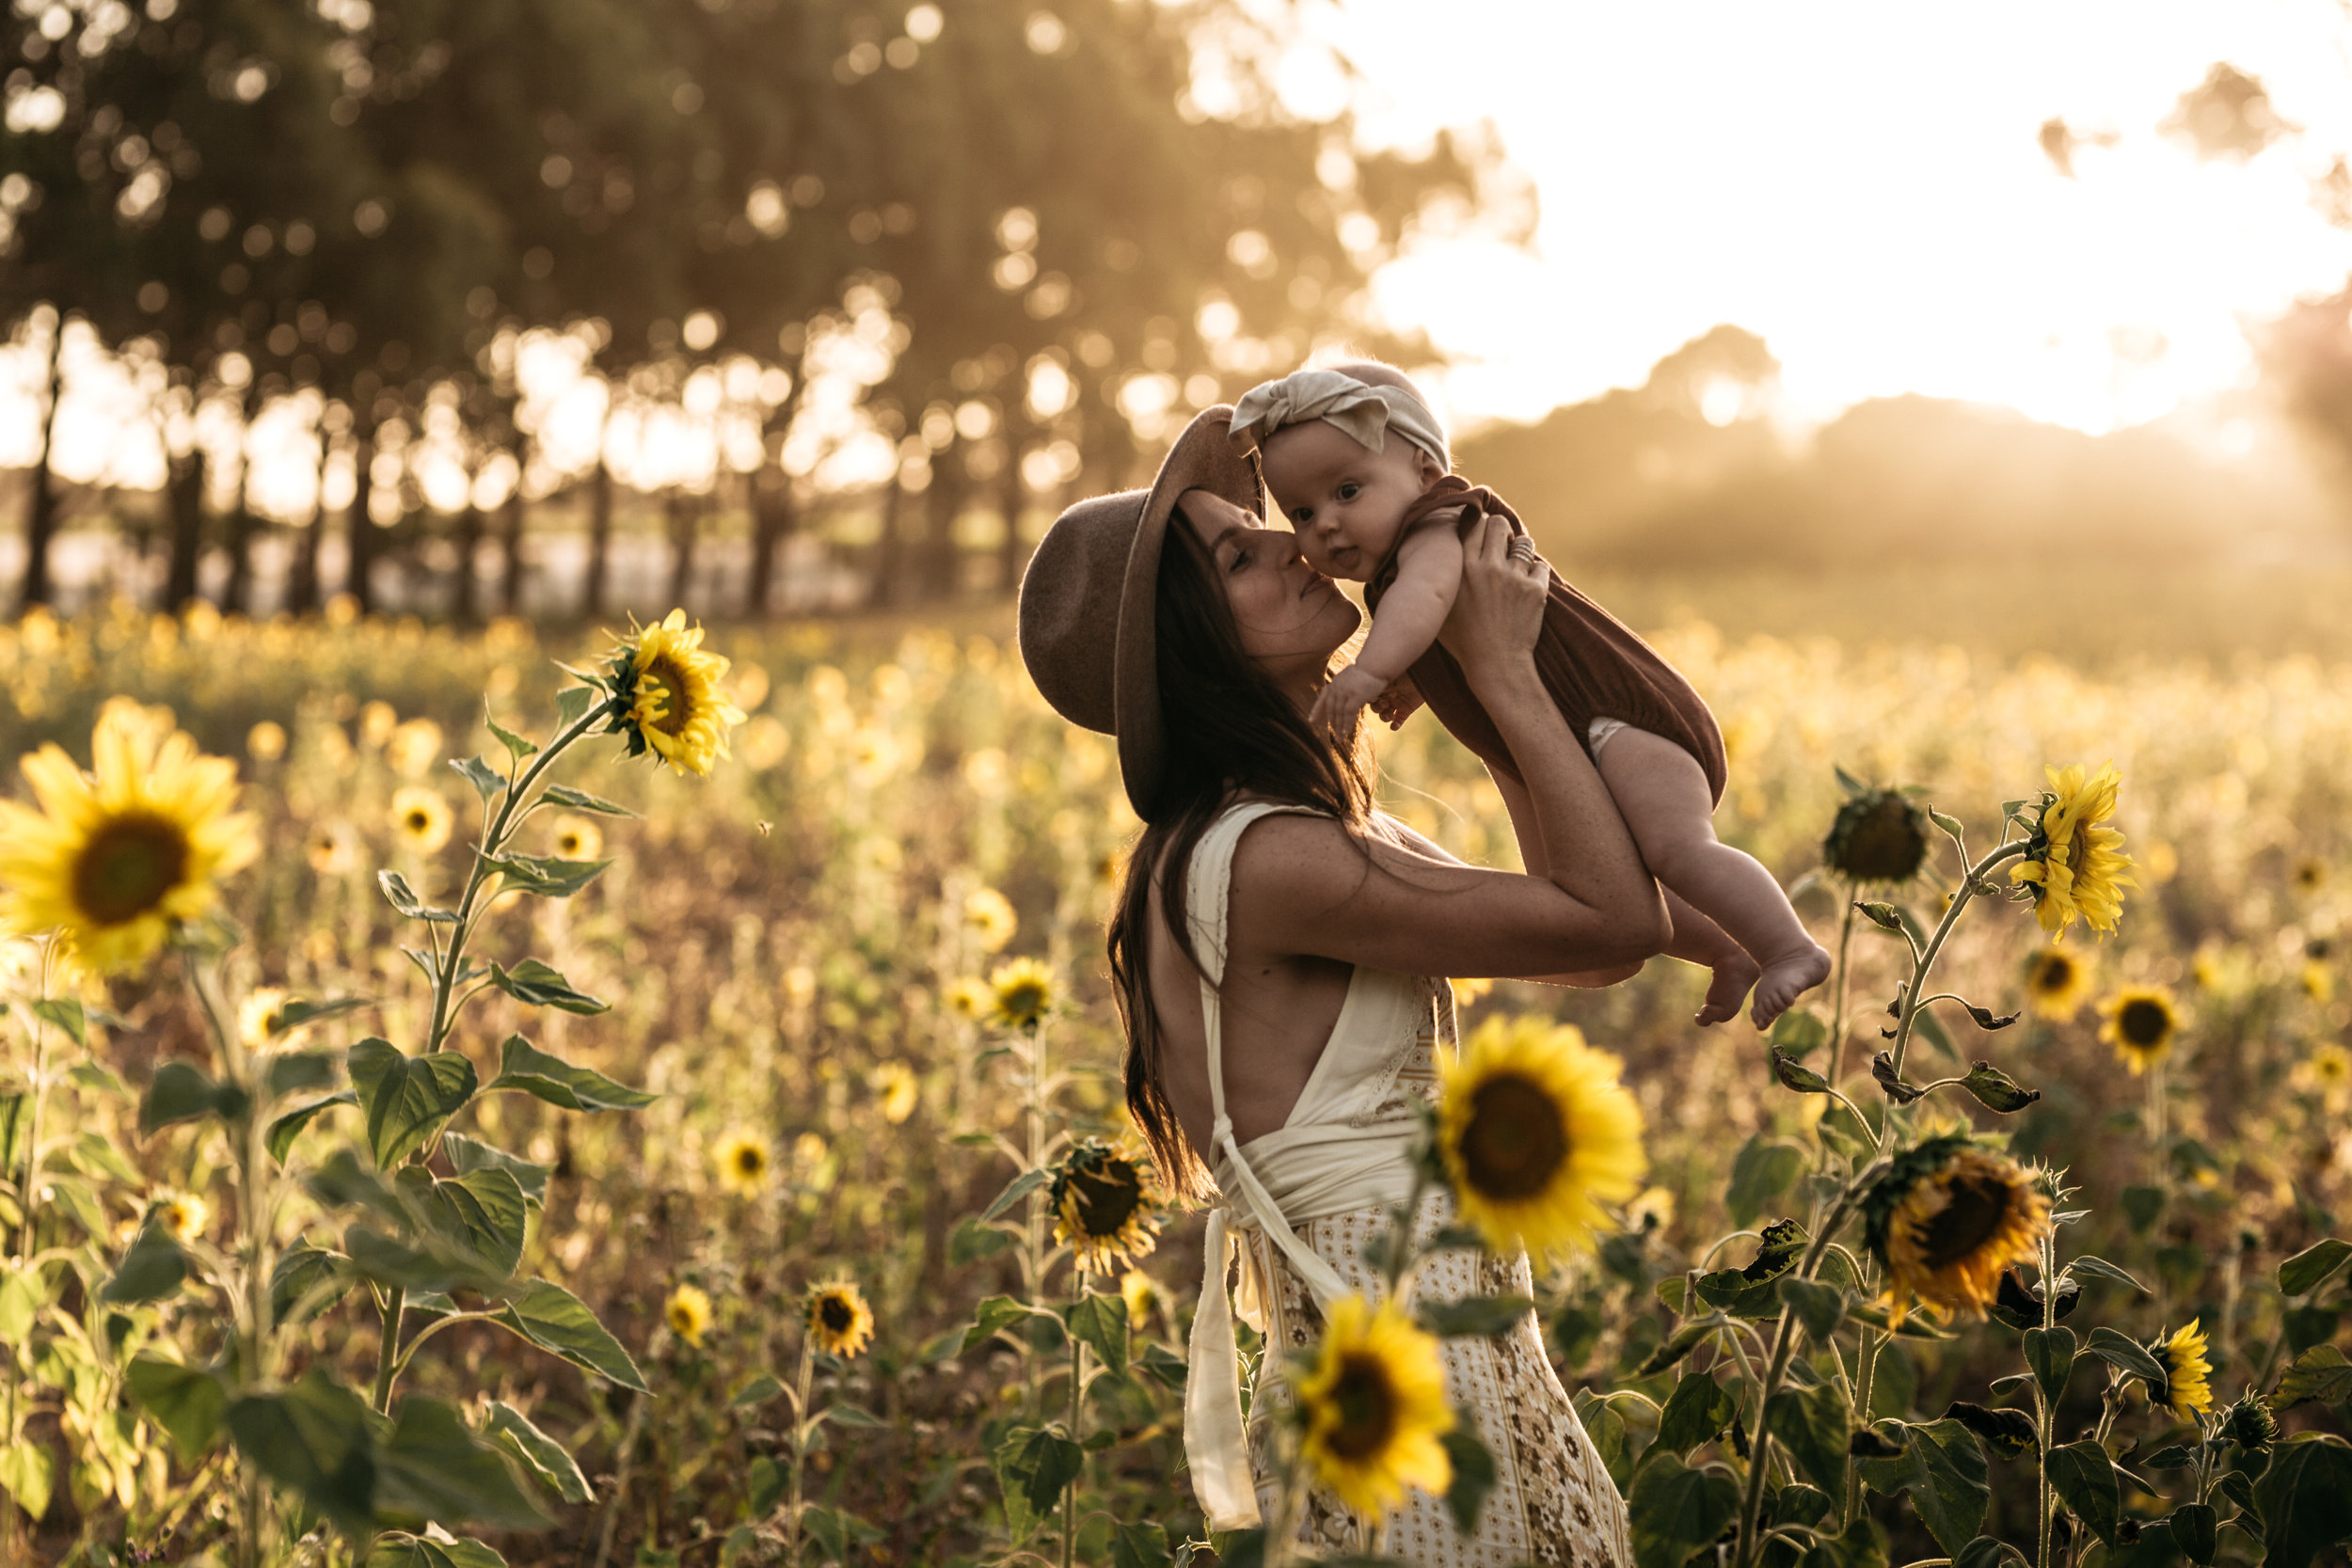 Elkie_Sunflowers2019_KHPhoto-12.JPG